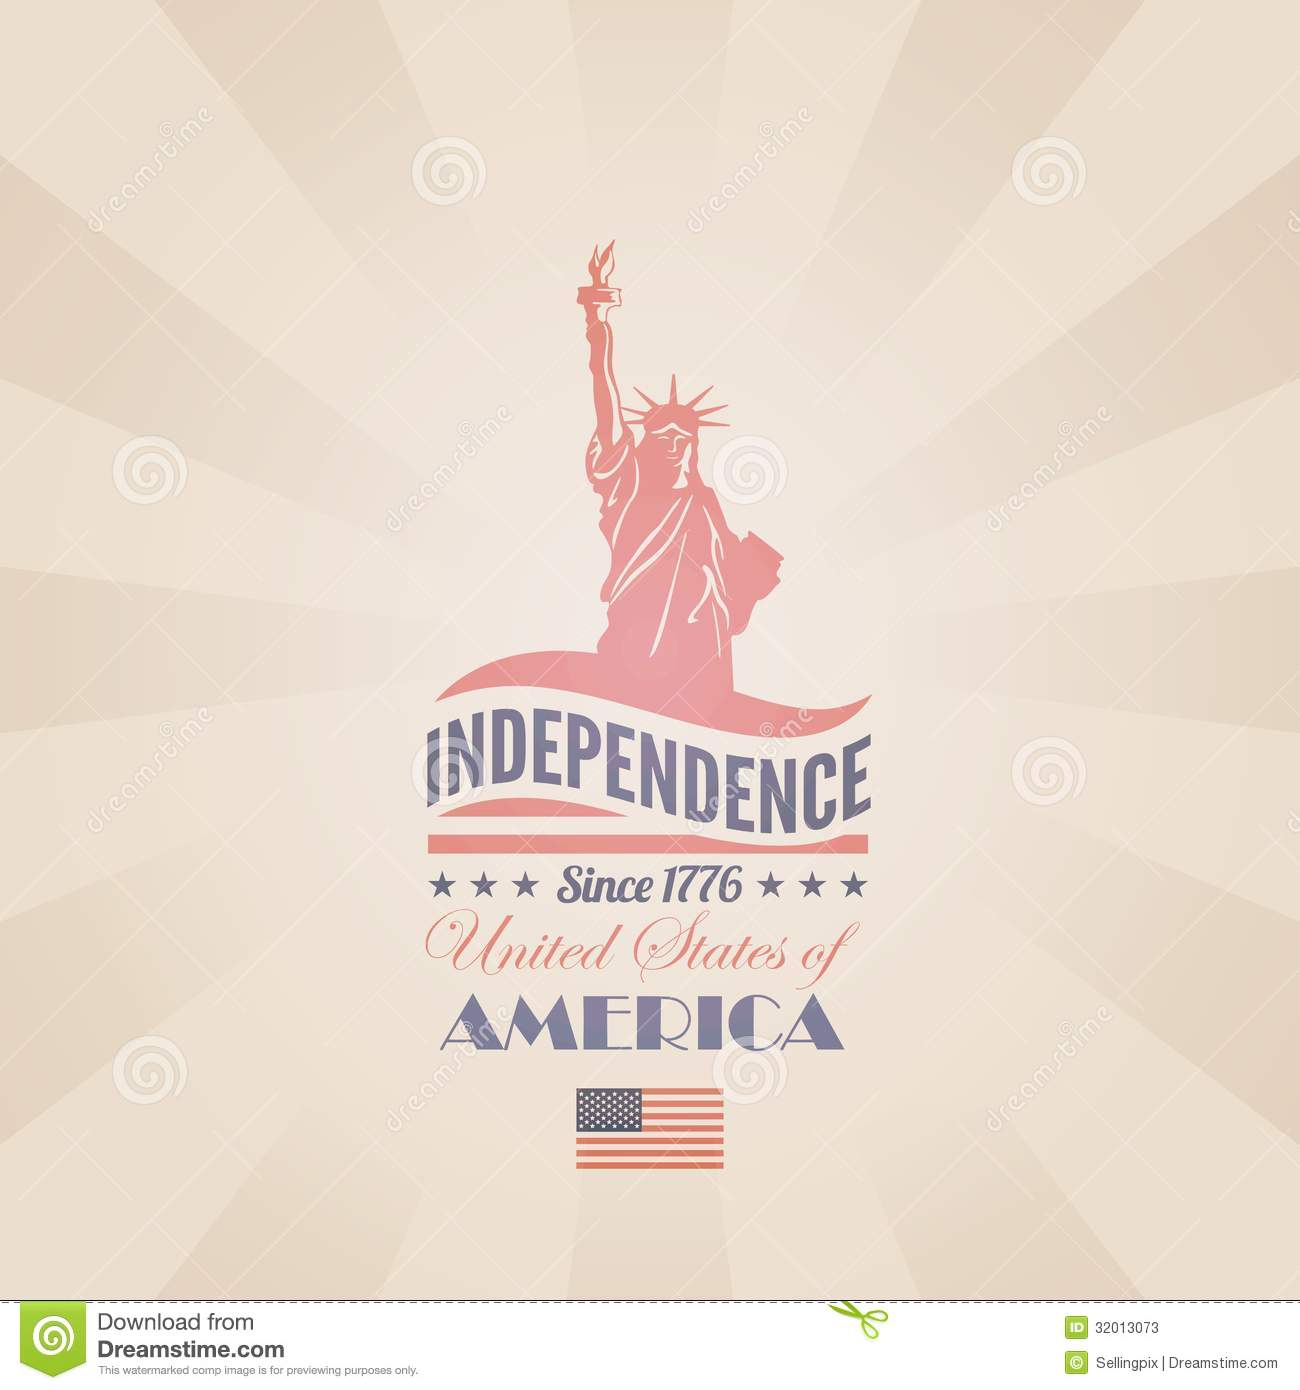 independence day poster template stock photography image  usa independence day vector design template liber stock photos